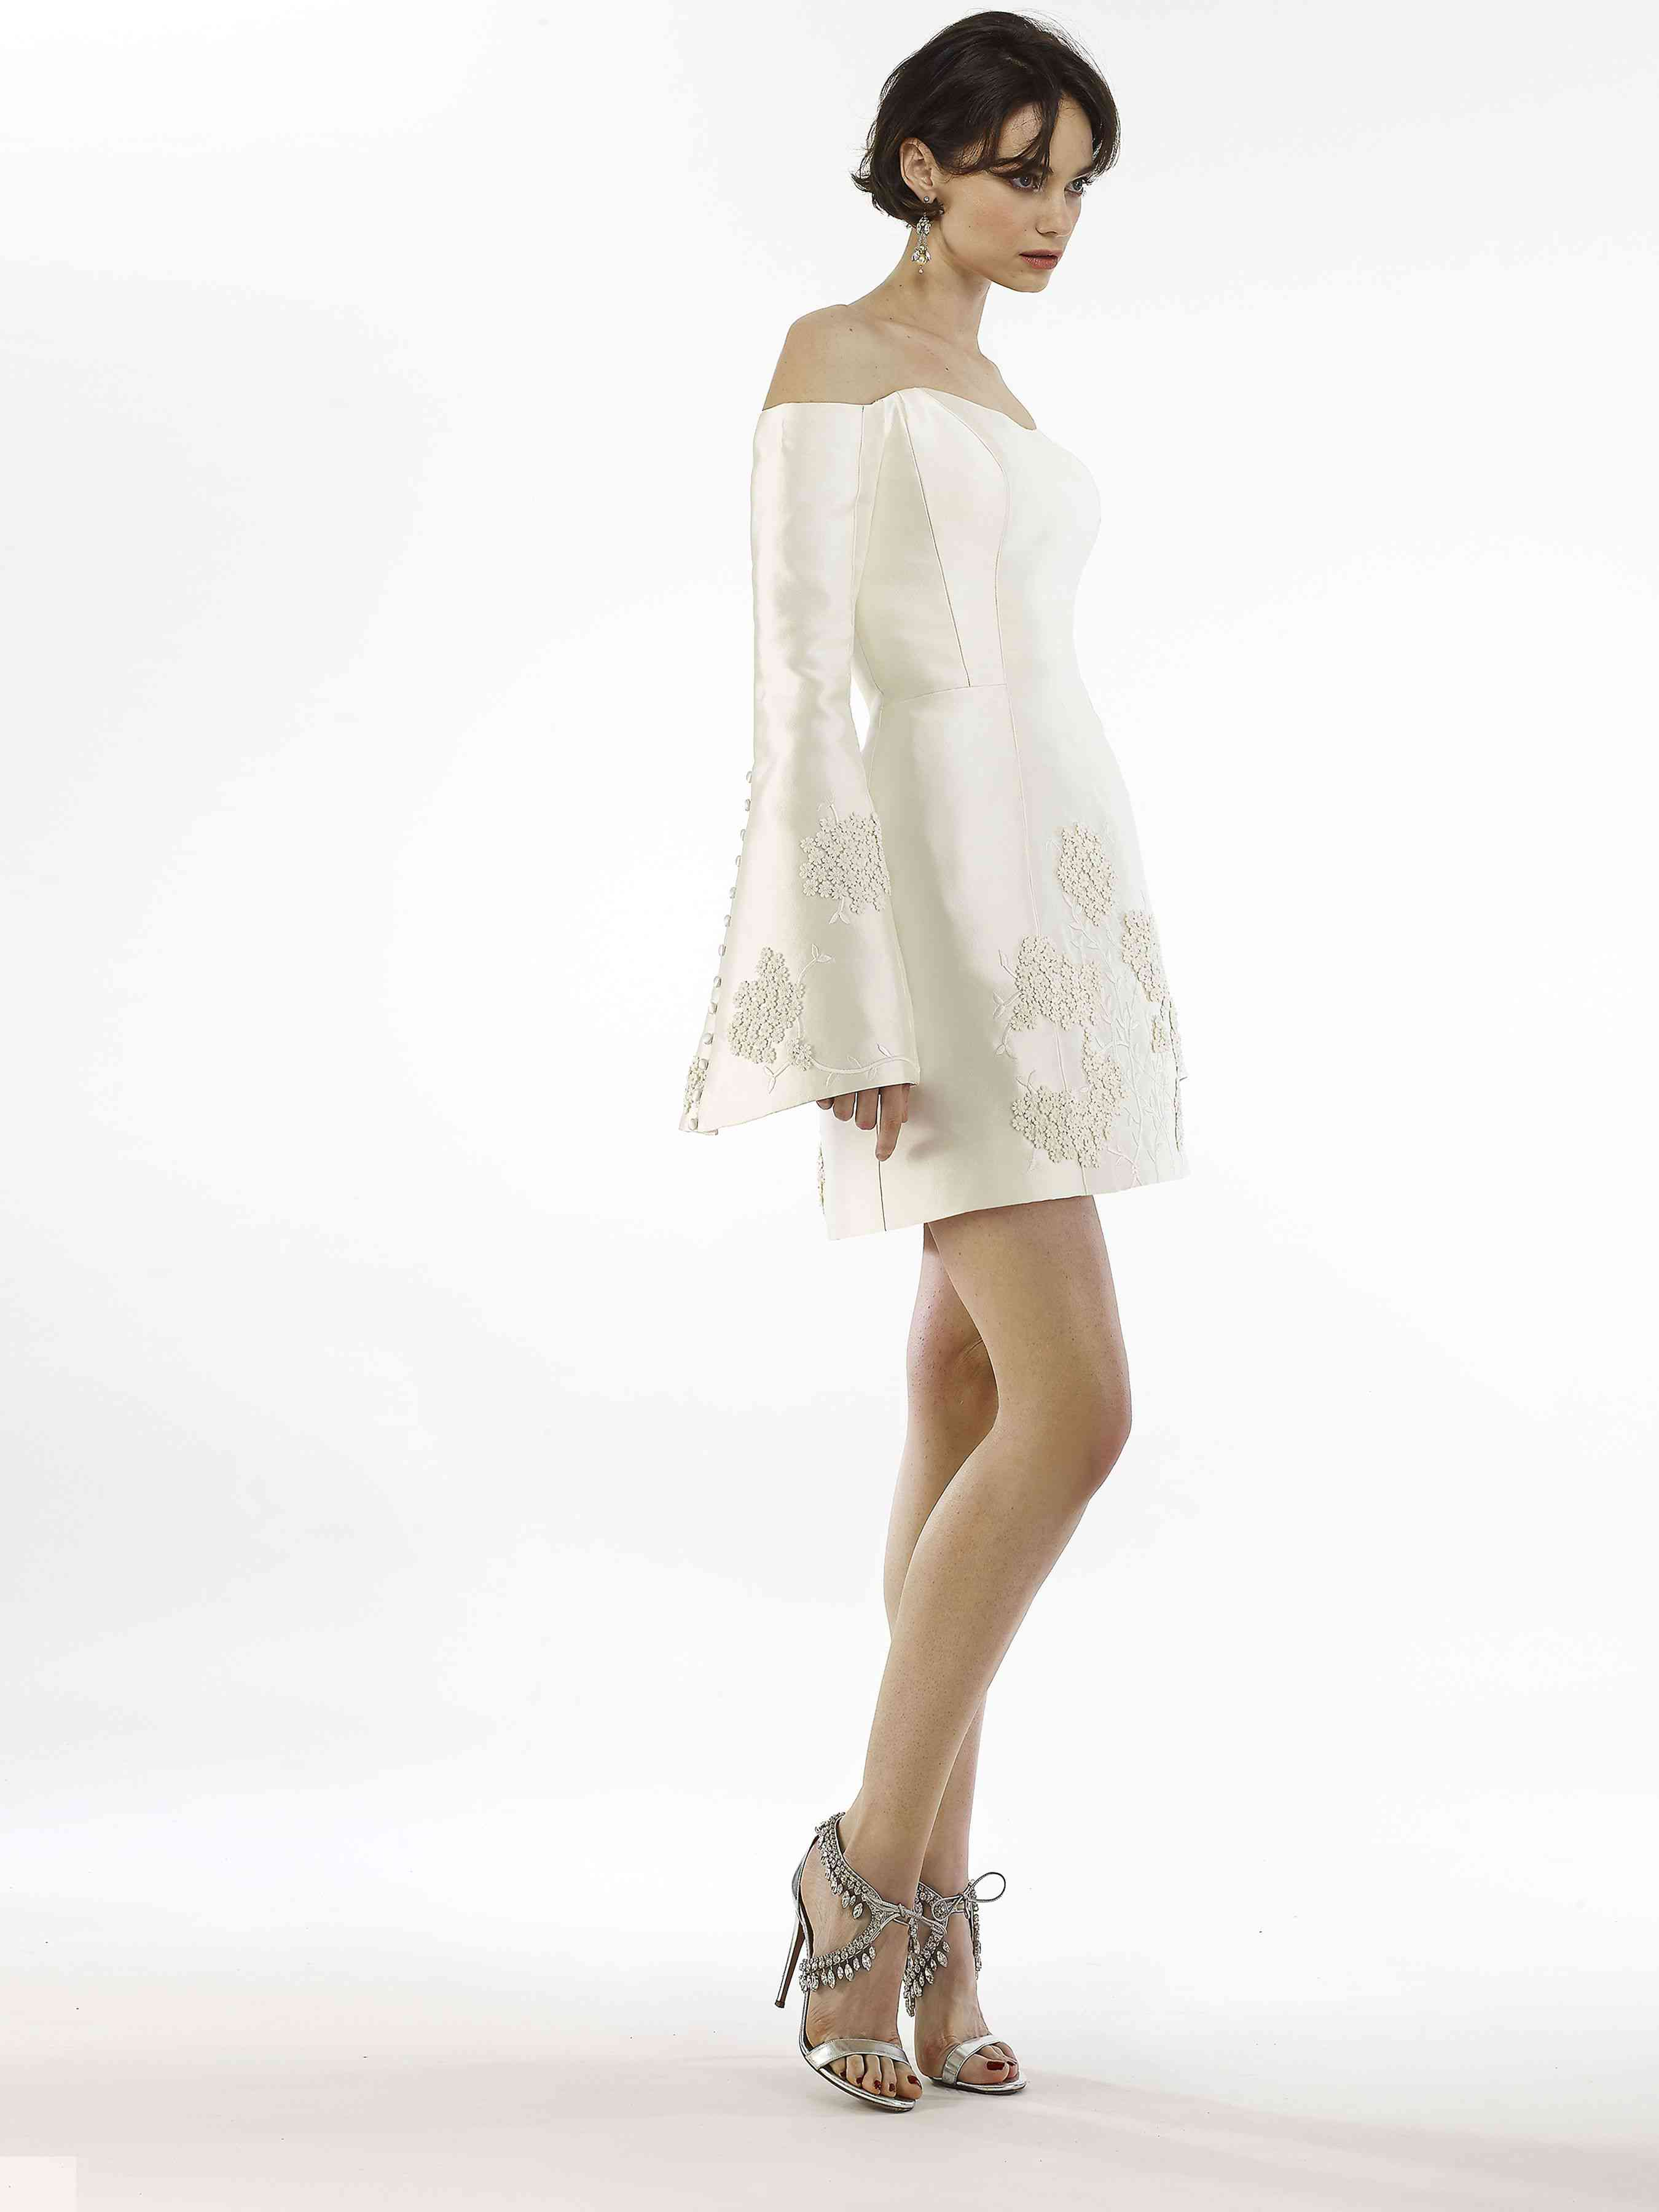 Model in embroidered off-the-shoulder mini dress with long bell sleeves